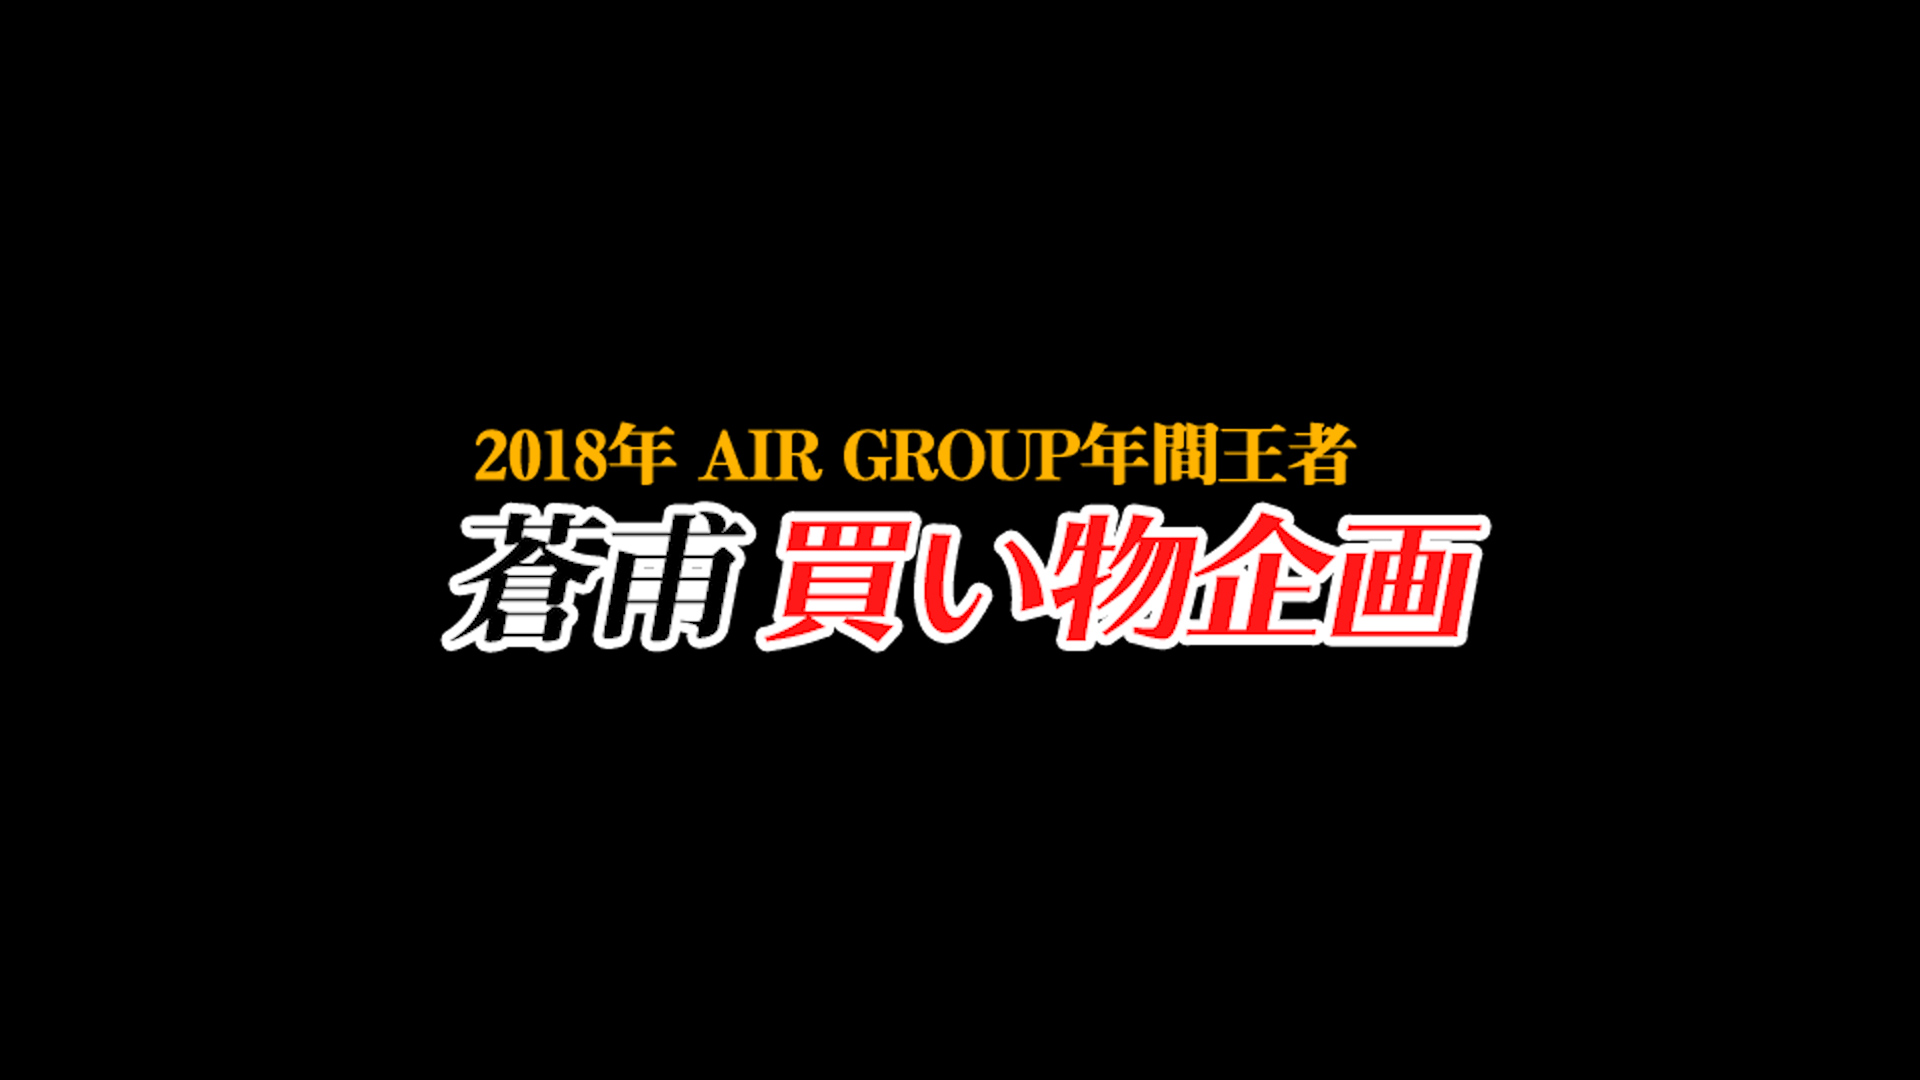 【AIR GROUP】2018年年間王者 蒼甫買い物企画